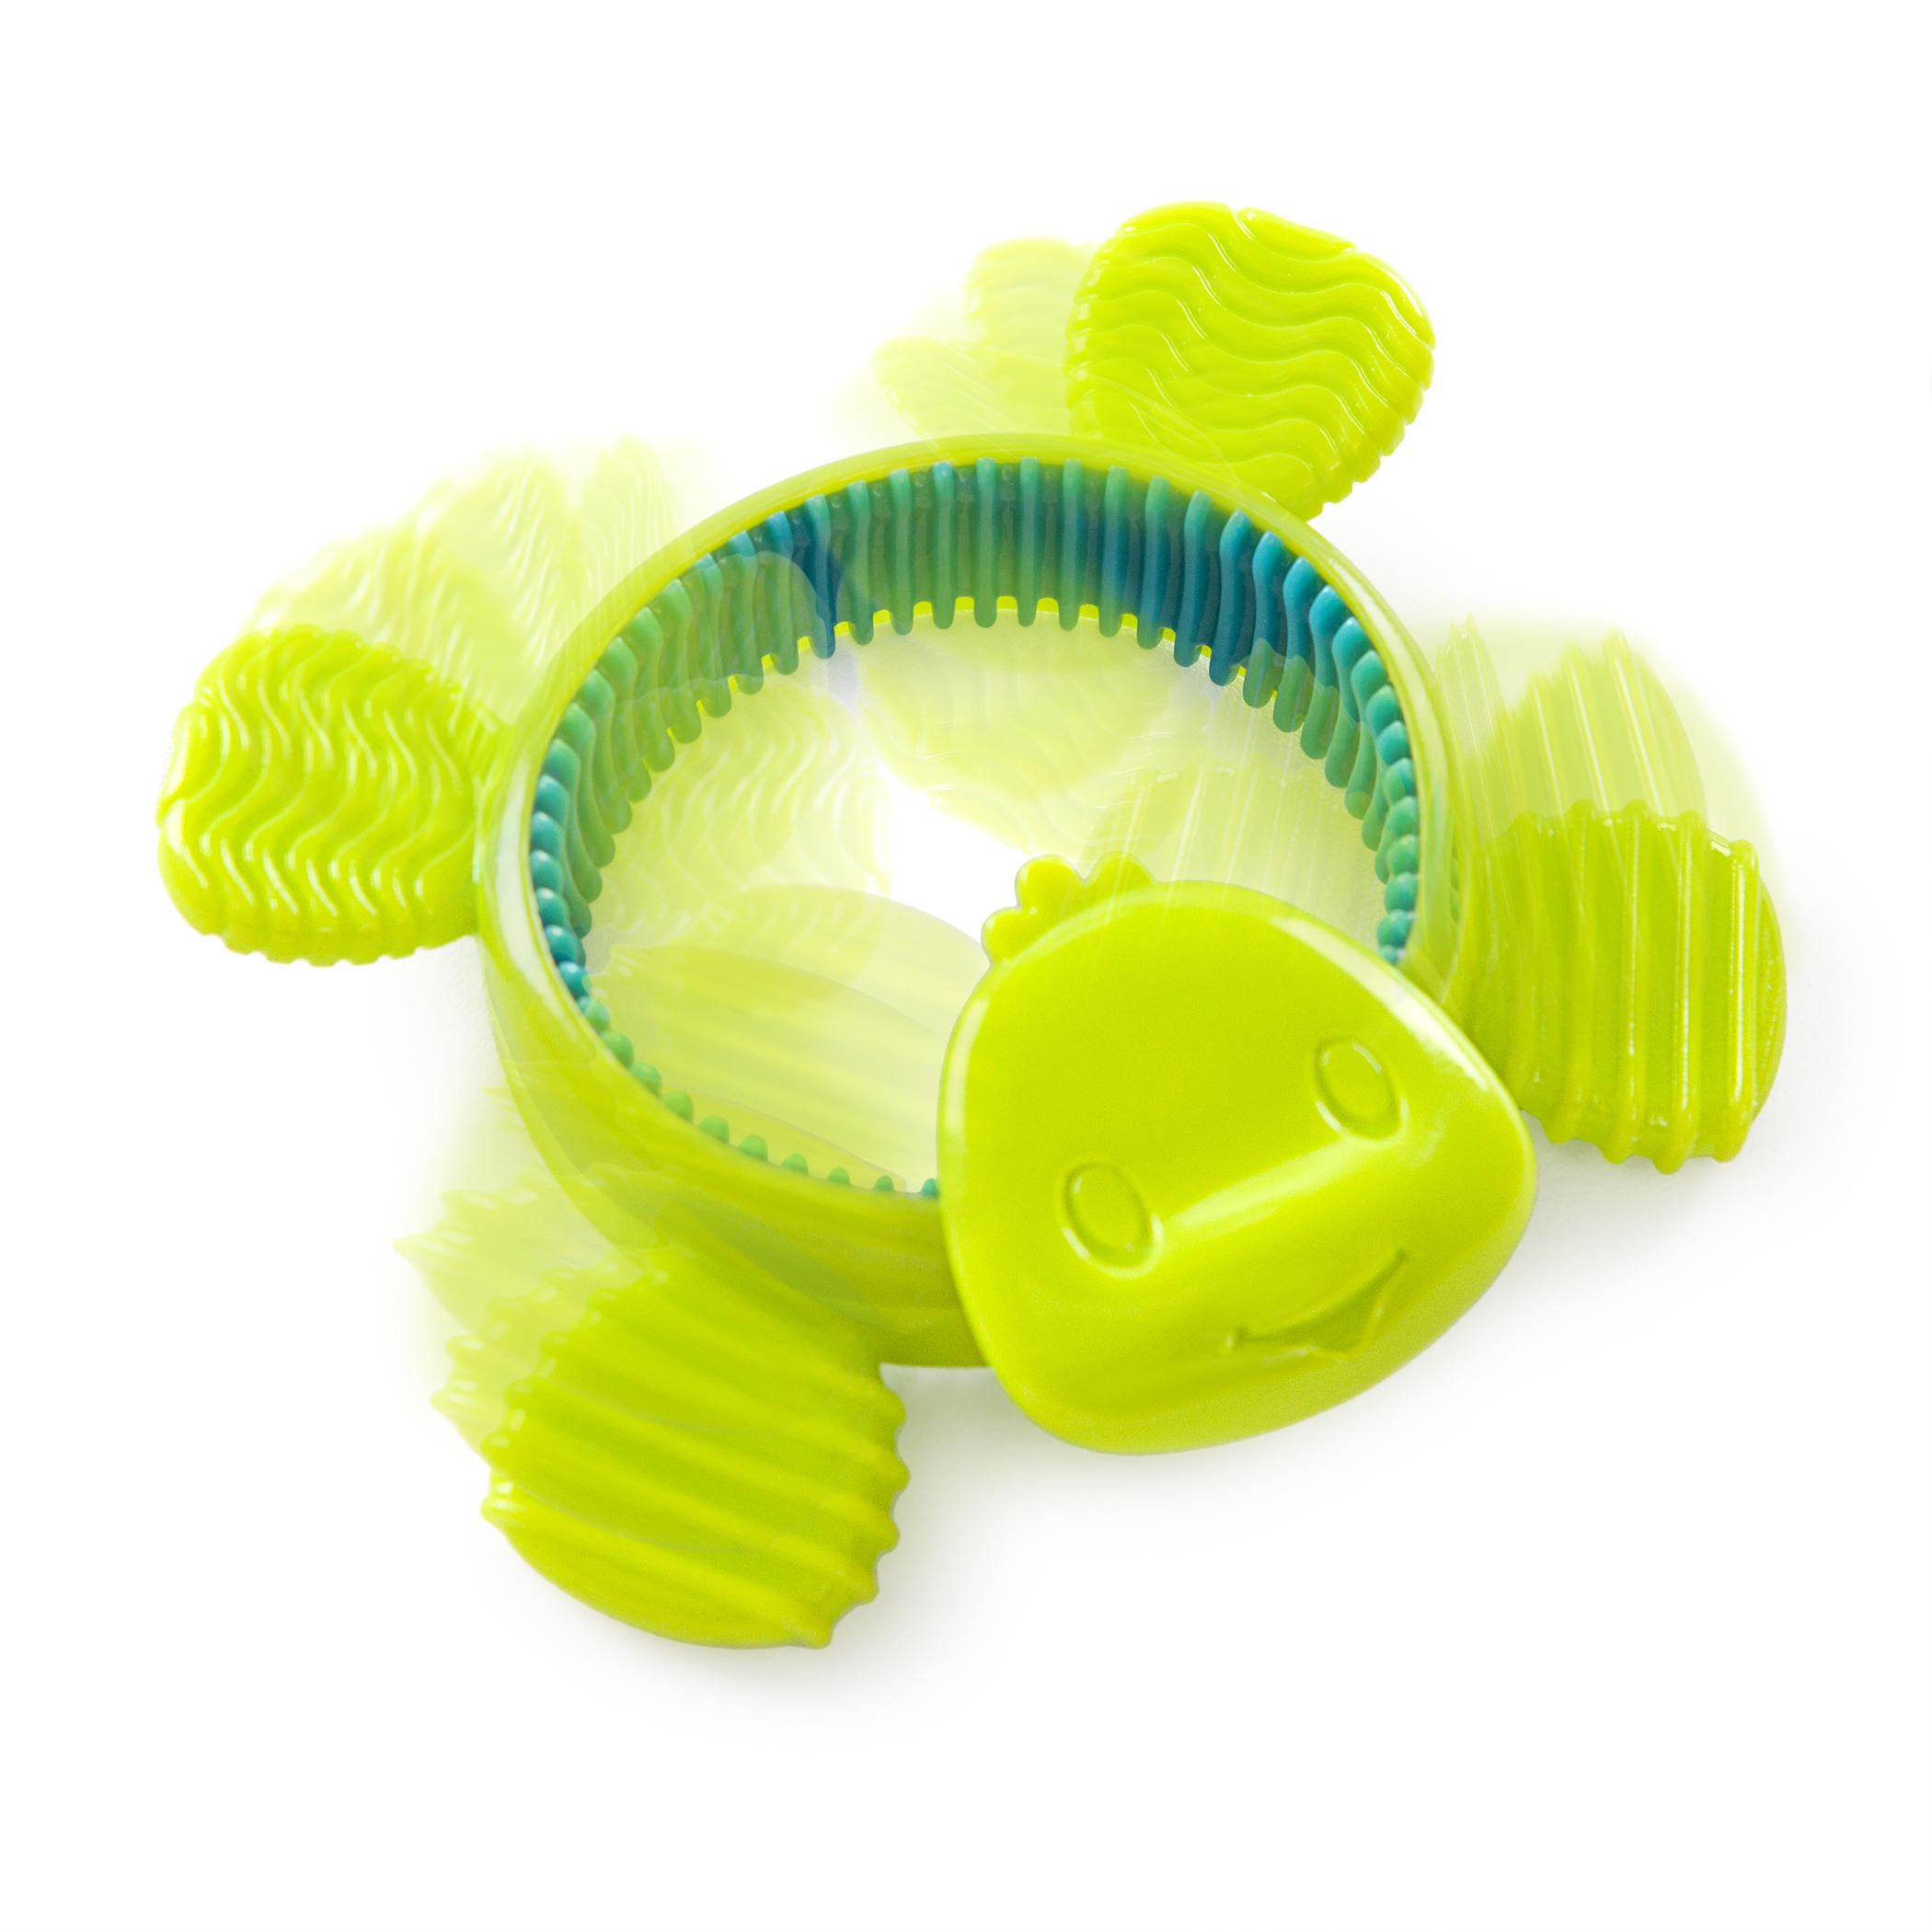 Revers-a-turtle™ Teething Toy